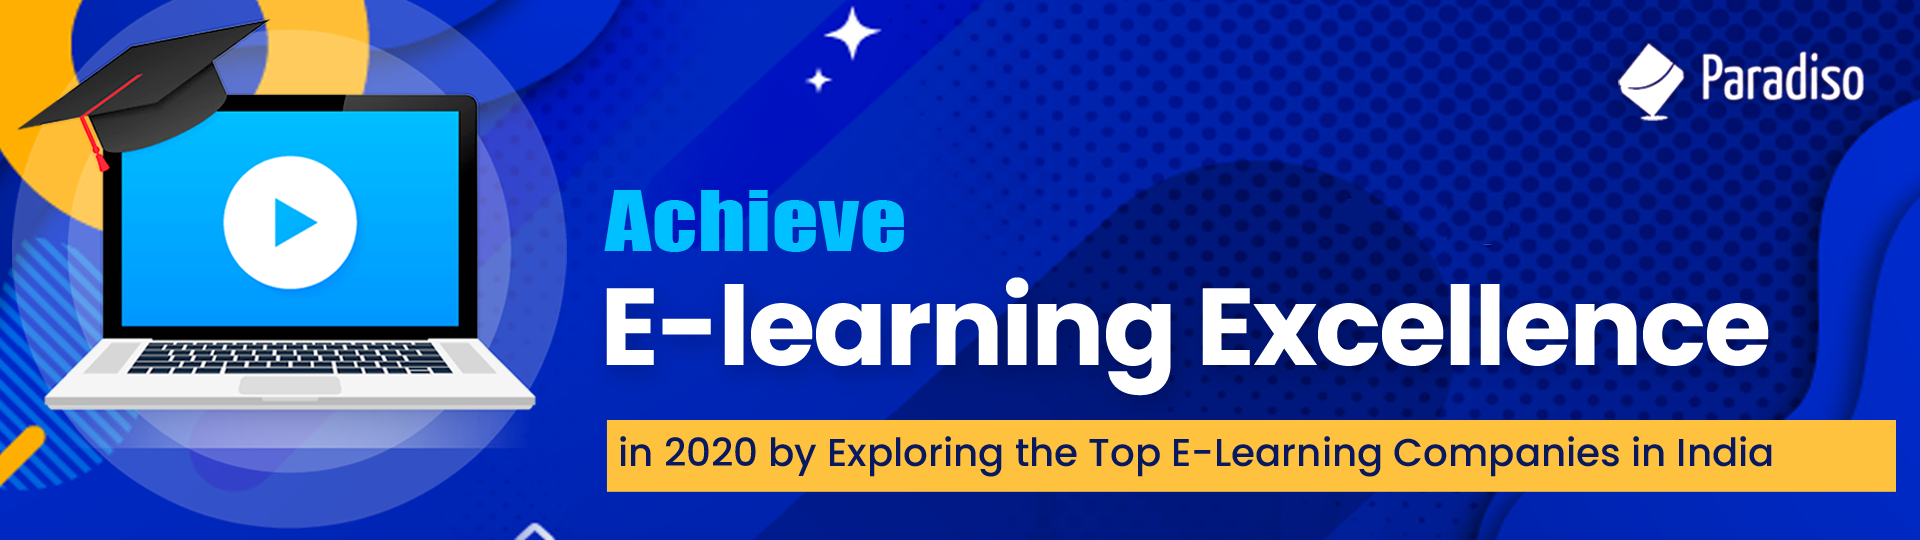 Learn About The Top E Learning Companies In India That Are Delivering Excellent Facilities And Lasting E Learning Experiences To The Clients